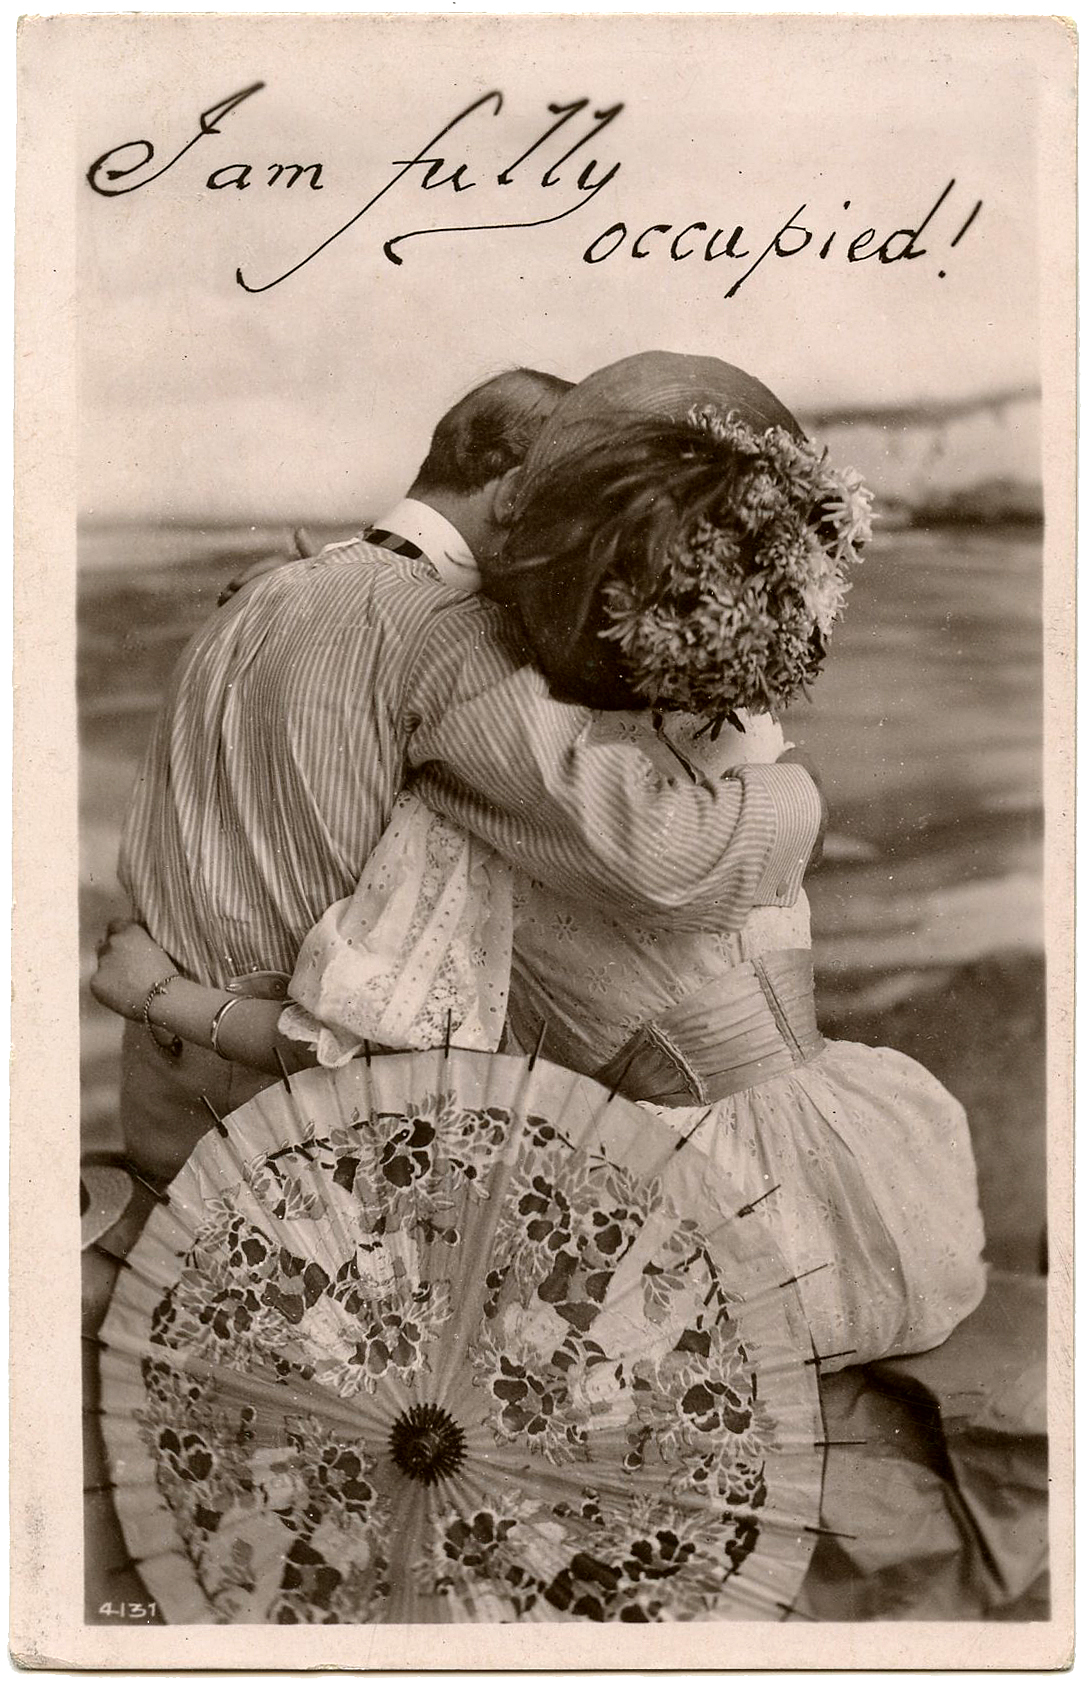 8 Old Fashioned Pictures of Couples! - The Graphics FairyOld Black And White Romantic Photos